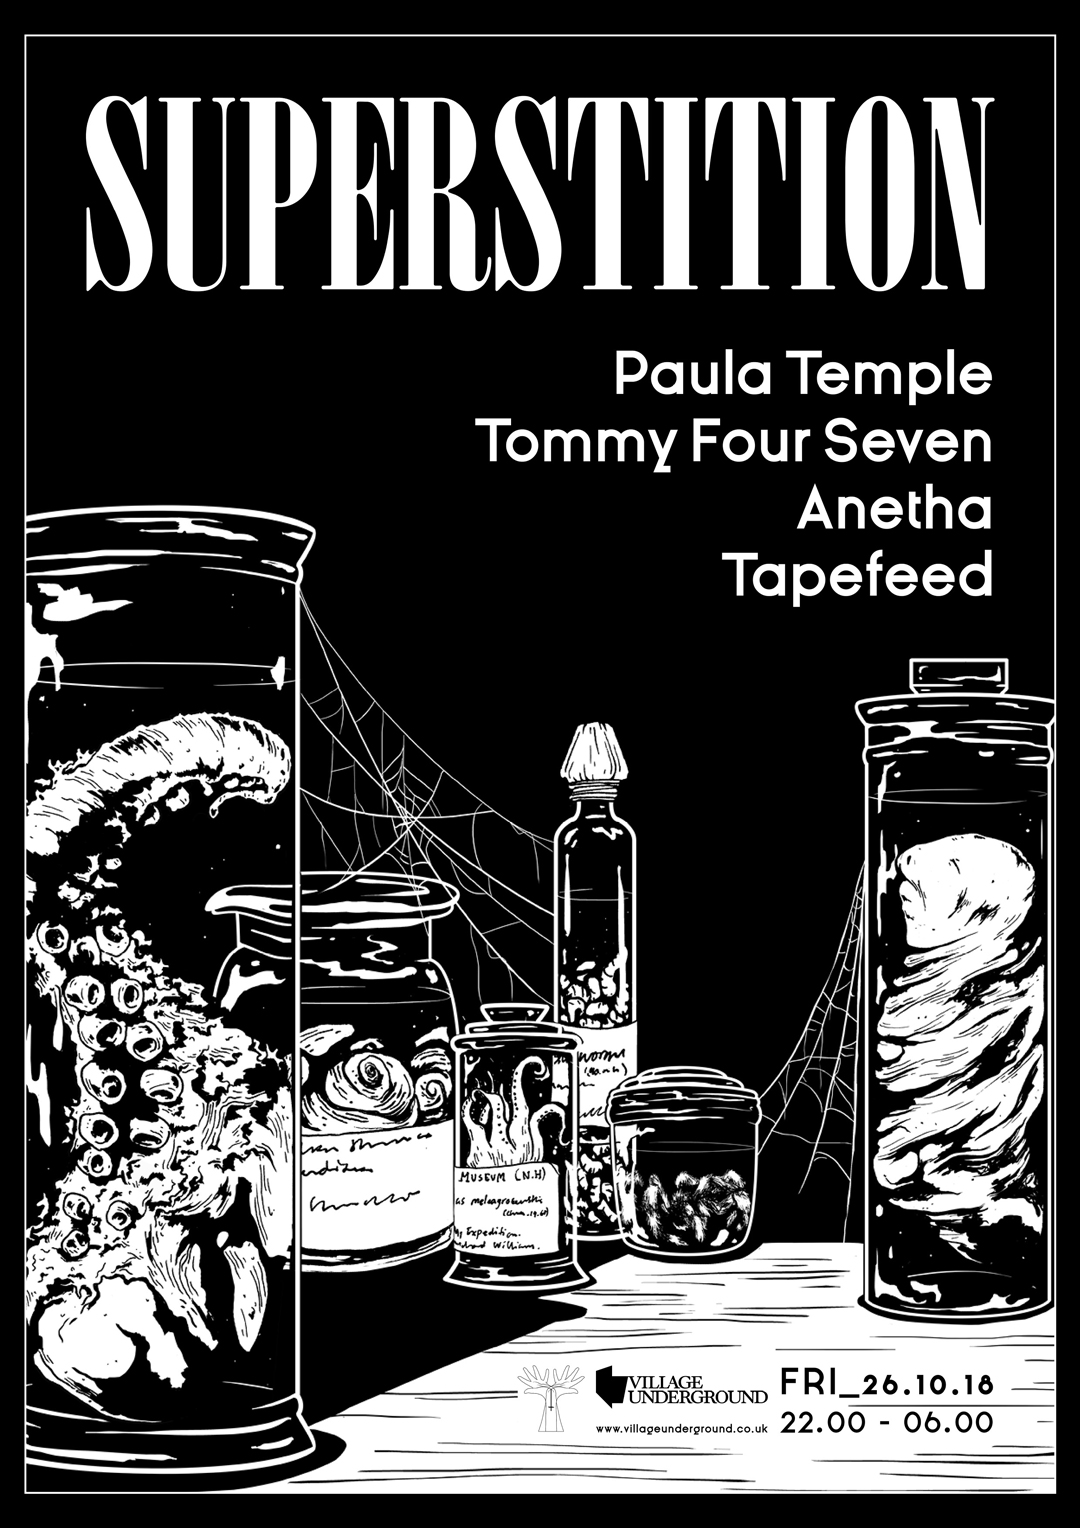 Superstition_2018_7.jpg